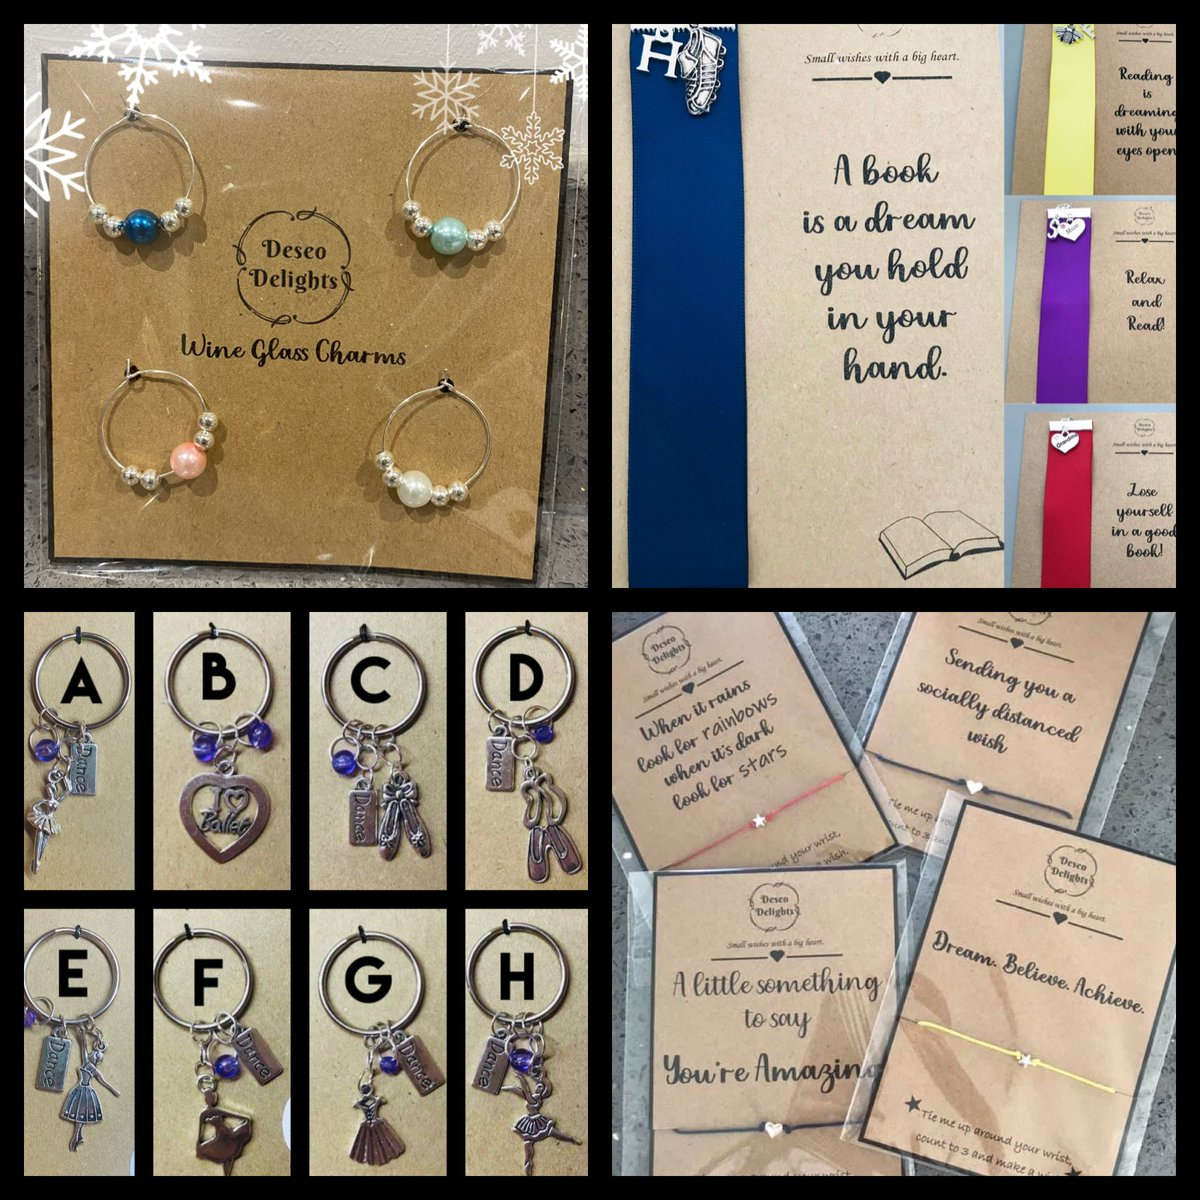 @MissSFEnglish Deseo Delights: Wish bracelets, bookmarks and wine glass charms. facebook.com/Deseo-Delights…